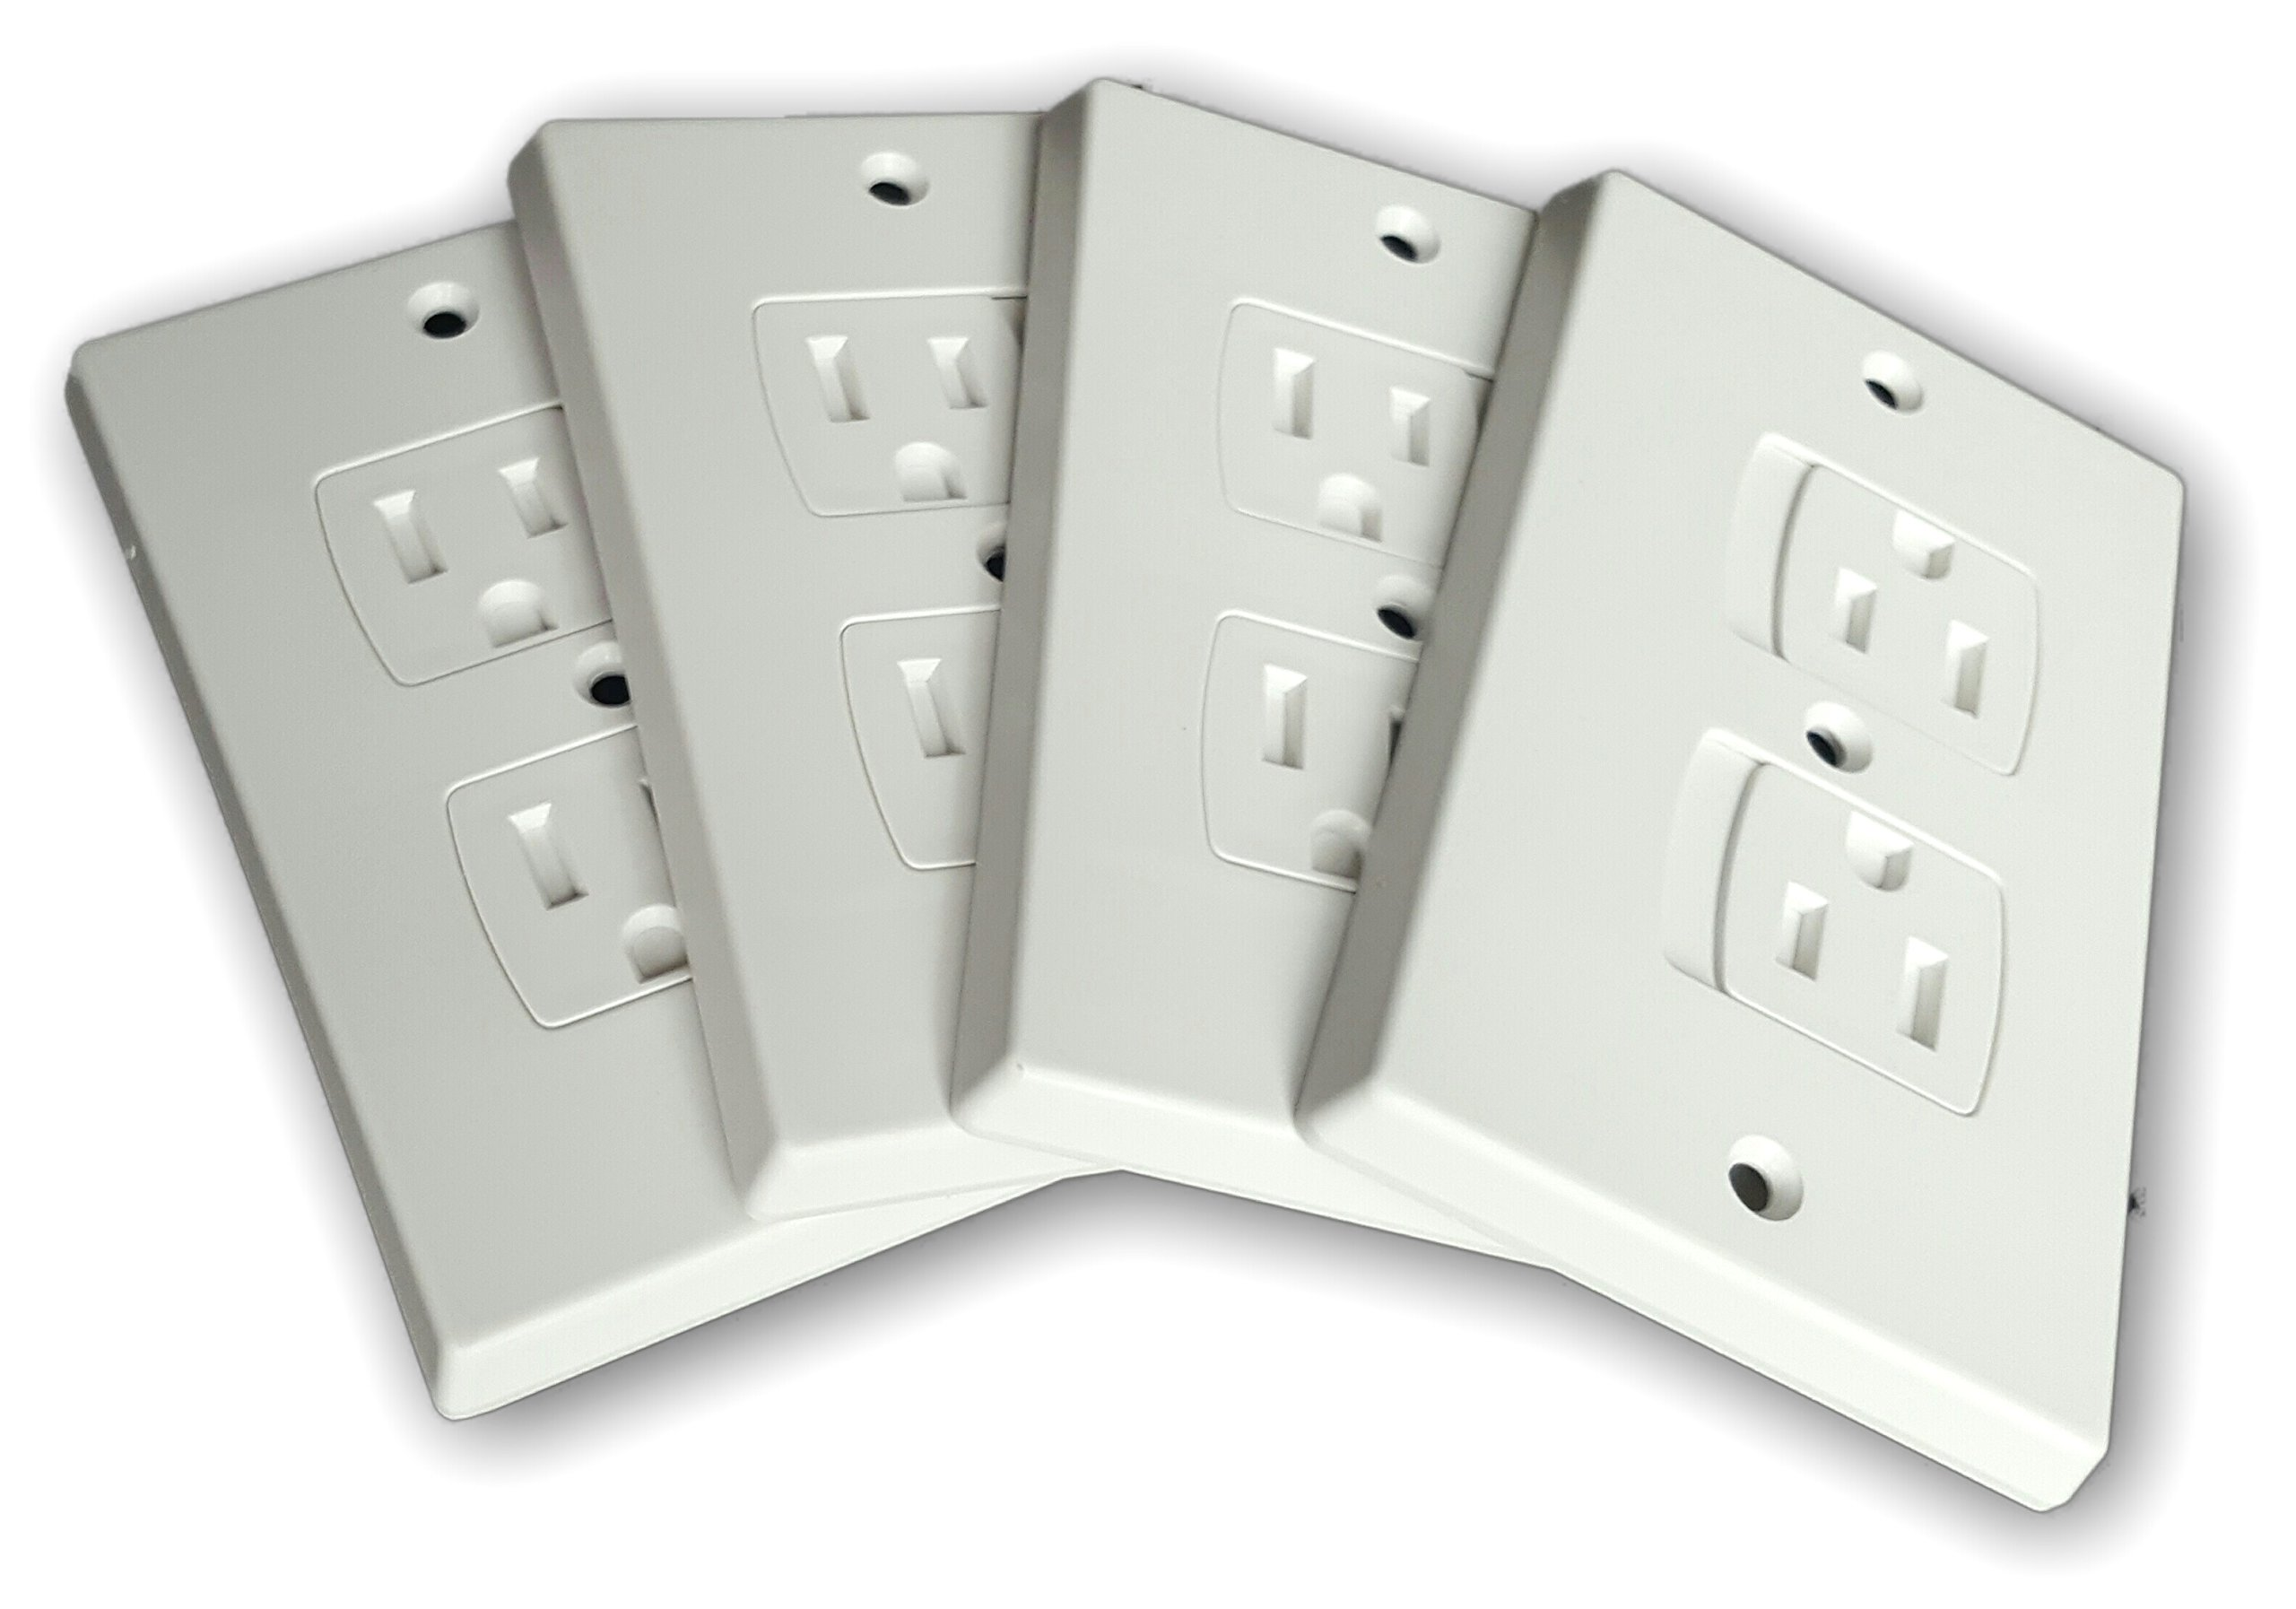 WONDERKID Self-Closing Electrical Outlet Covers for Baby Proofing - White - 4 Pack by WONDERKID